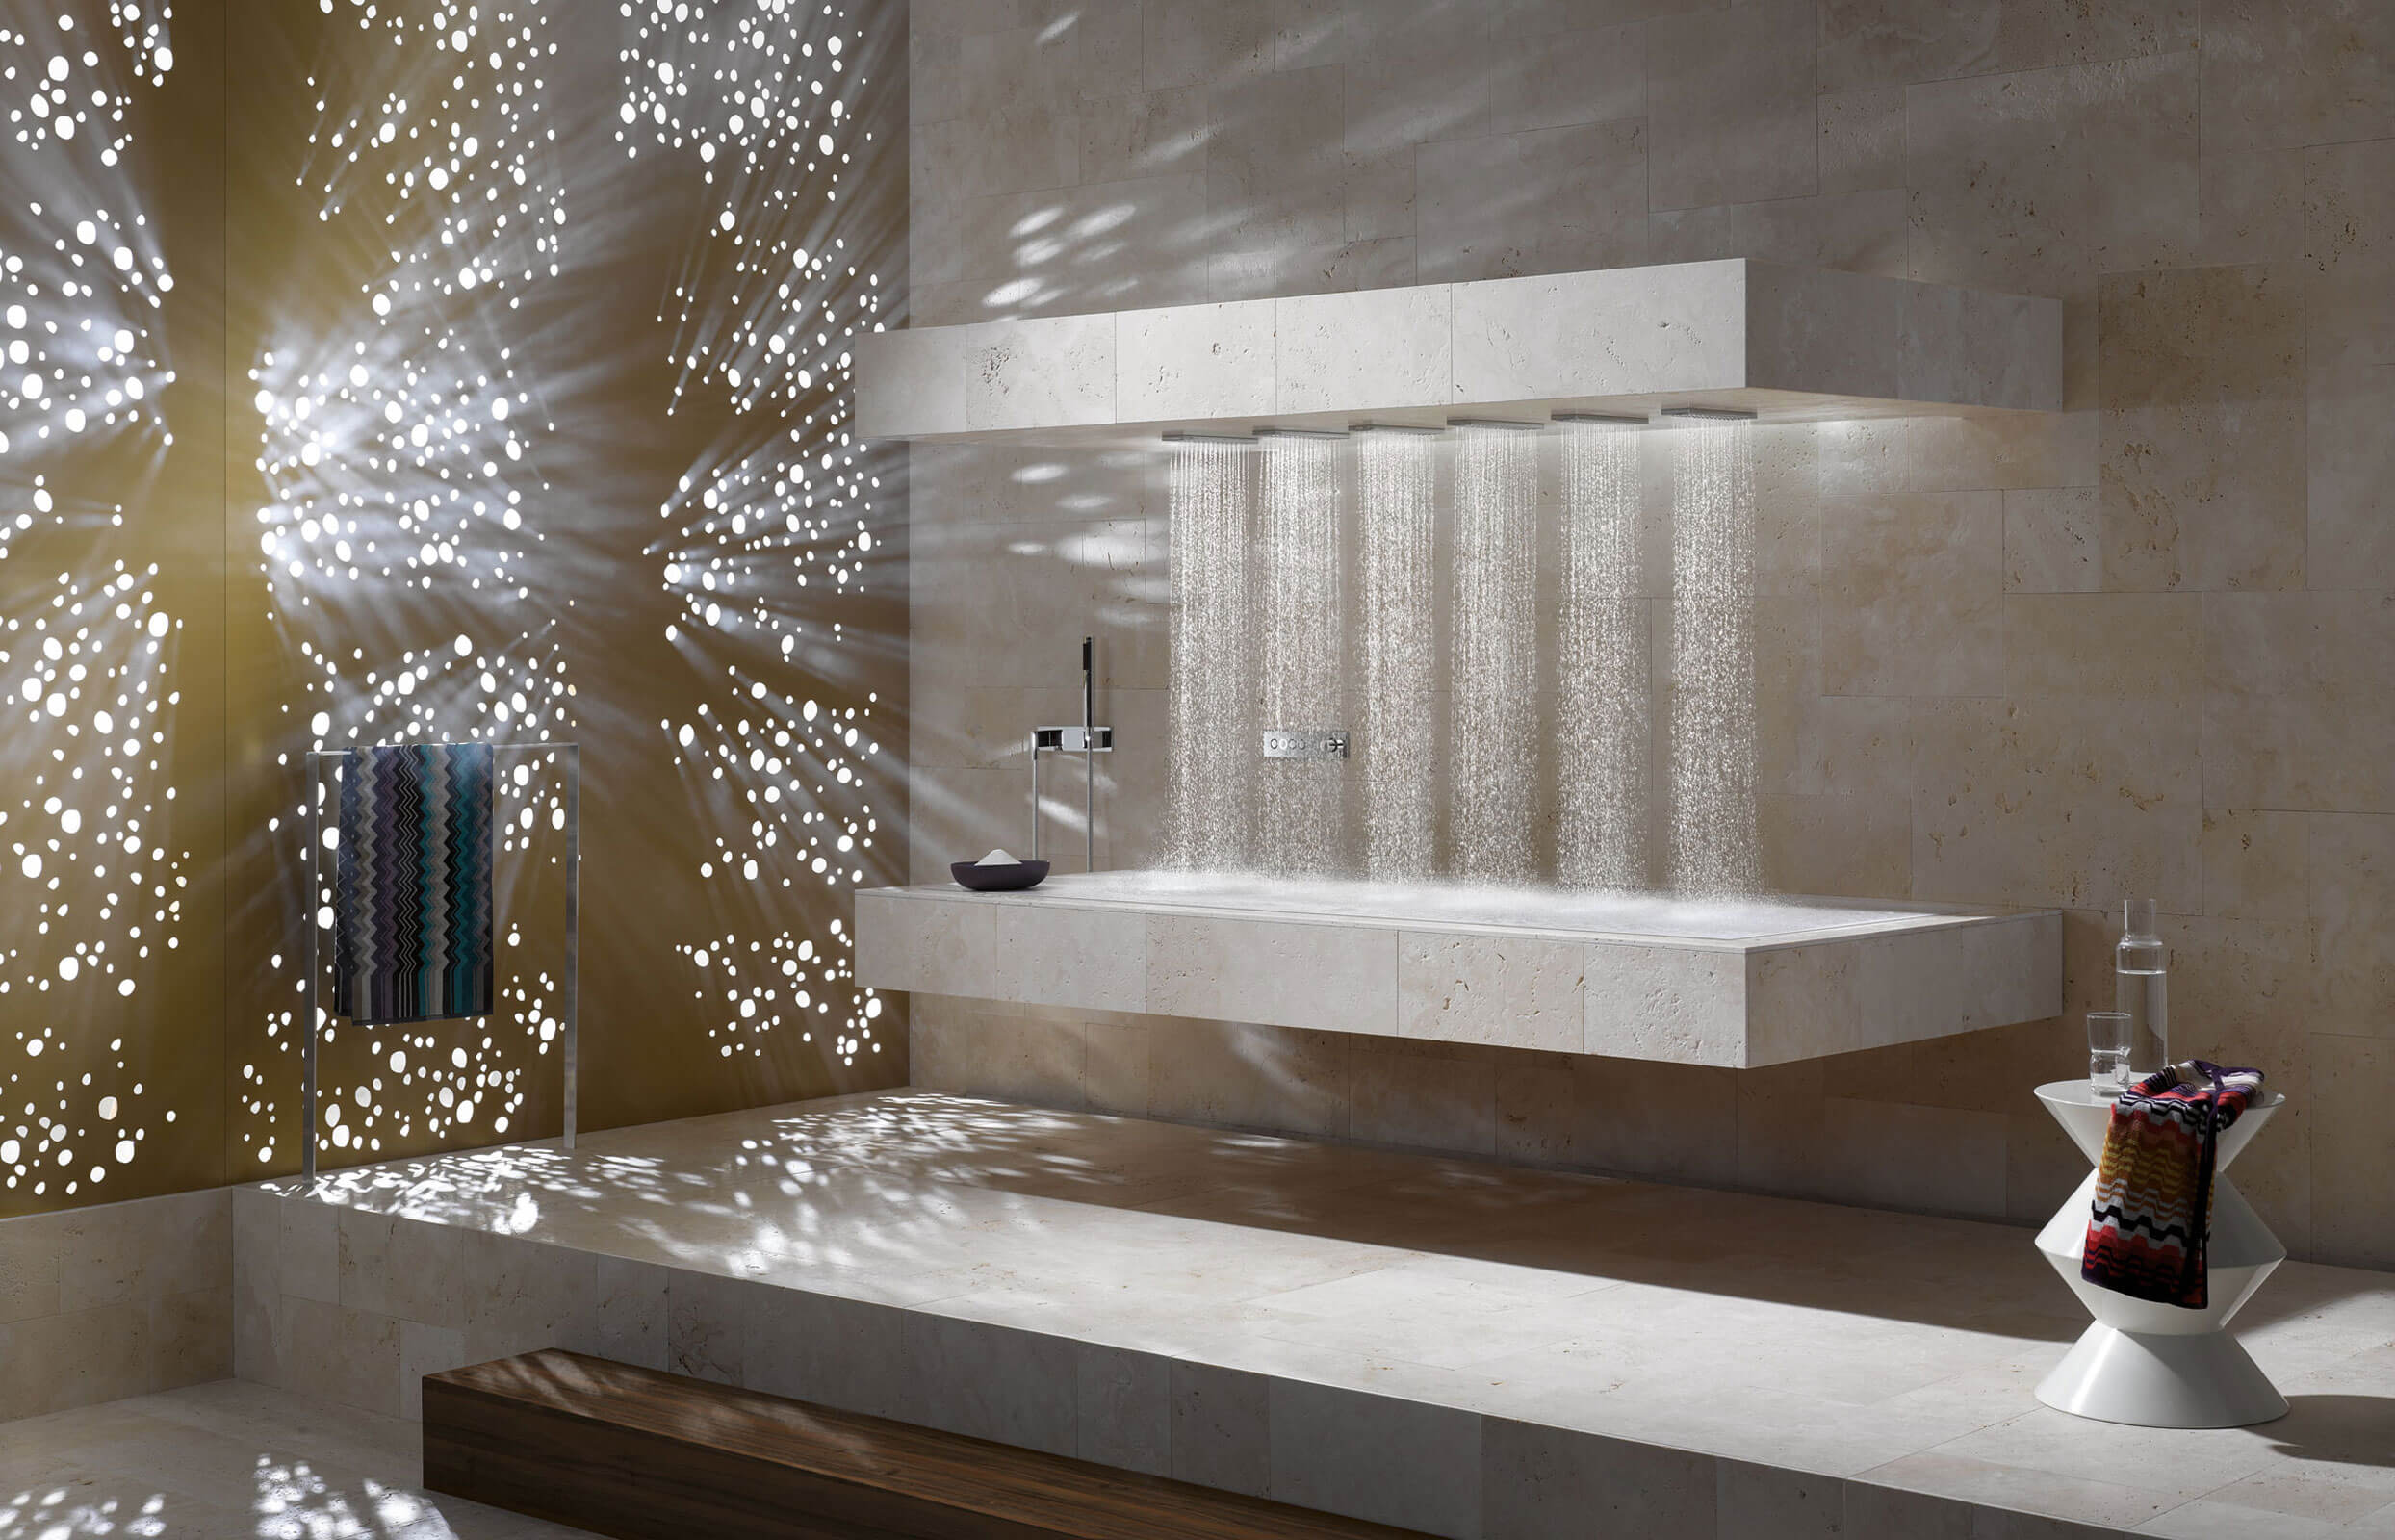 Spa- und Bad-Architektur Design mit Dornbracht Luxusdusche Spa- und Bad-Architektur Design mit Dornbracht Luxusdusche Massagedusche Horizontal Shower ATT ermöglicht das Duschen mit der AMBIANCE TUNING TECHNIQUE erstmals im Liegen.